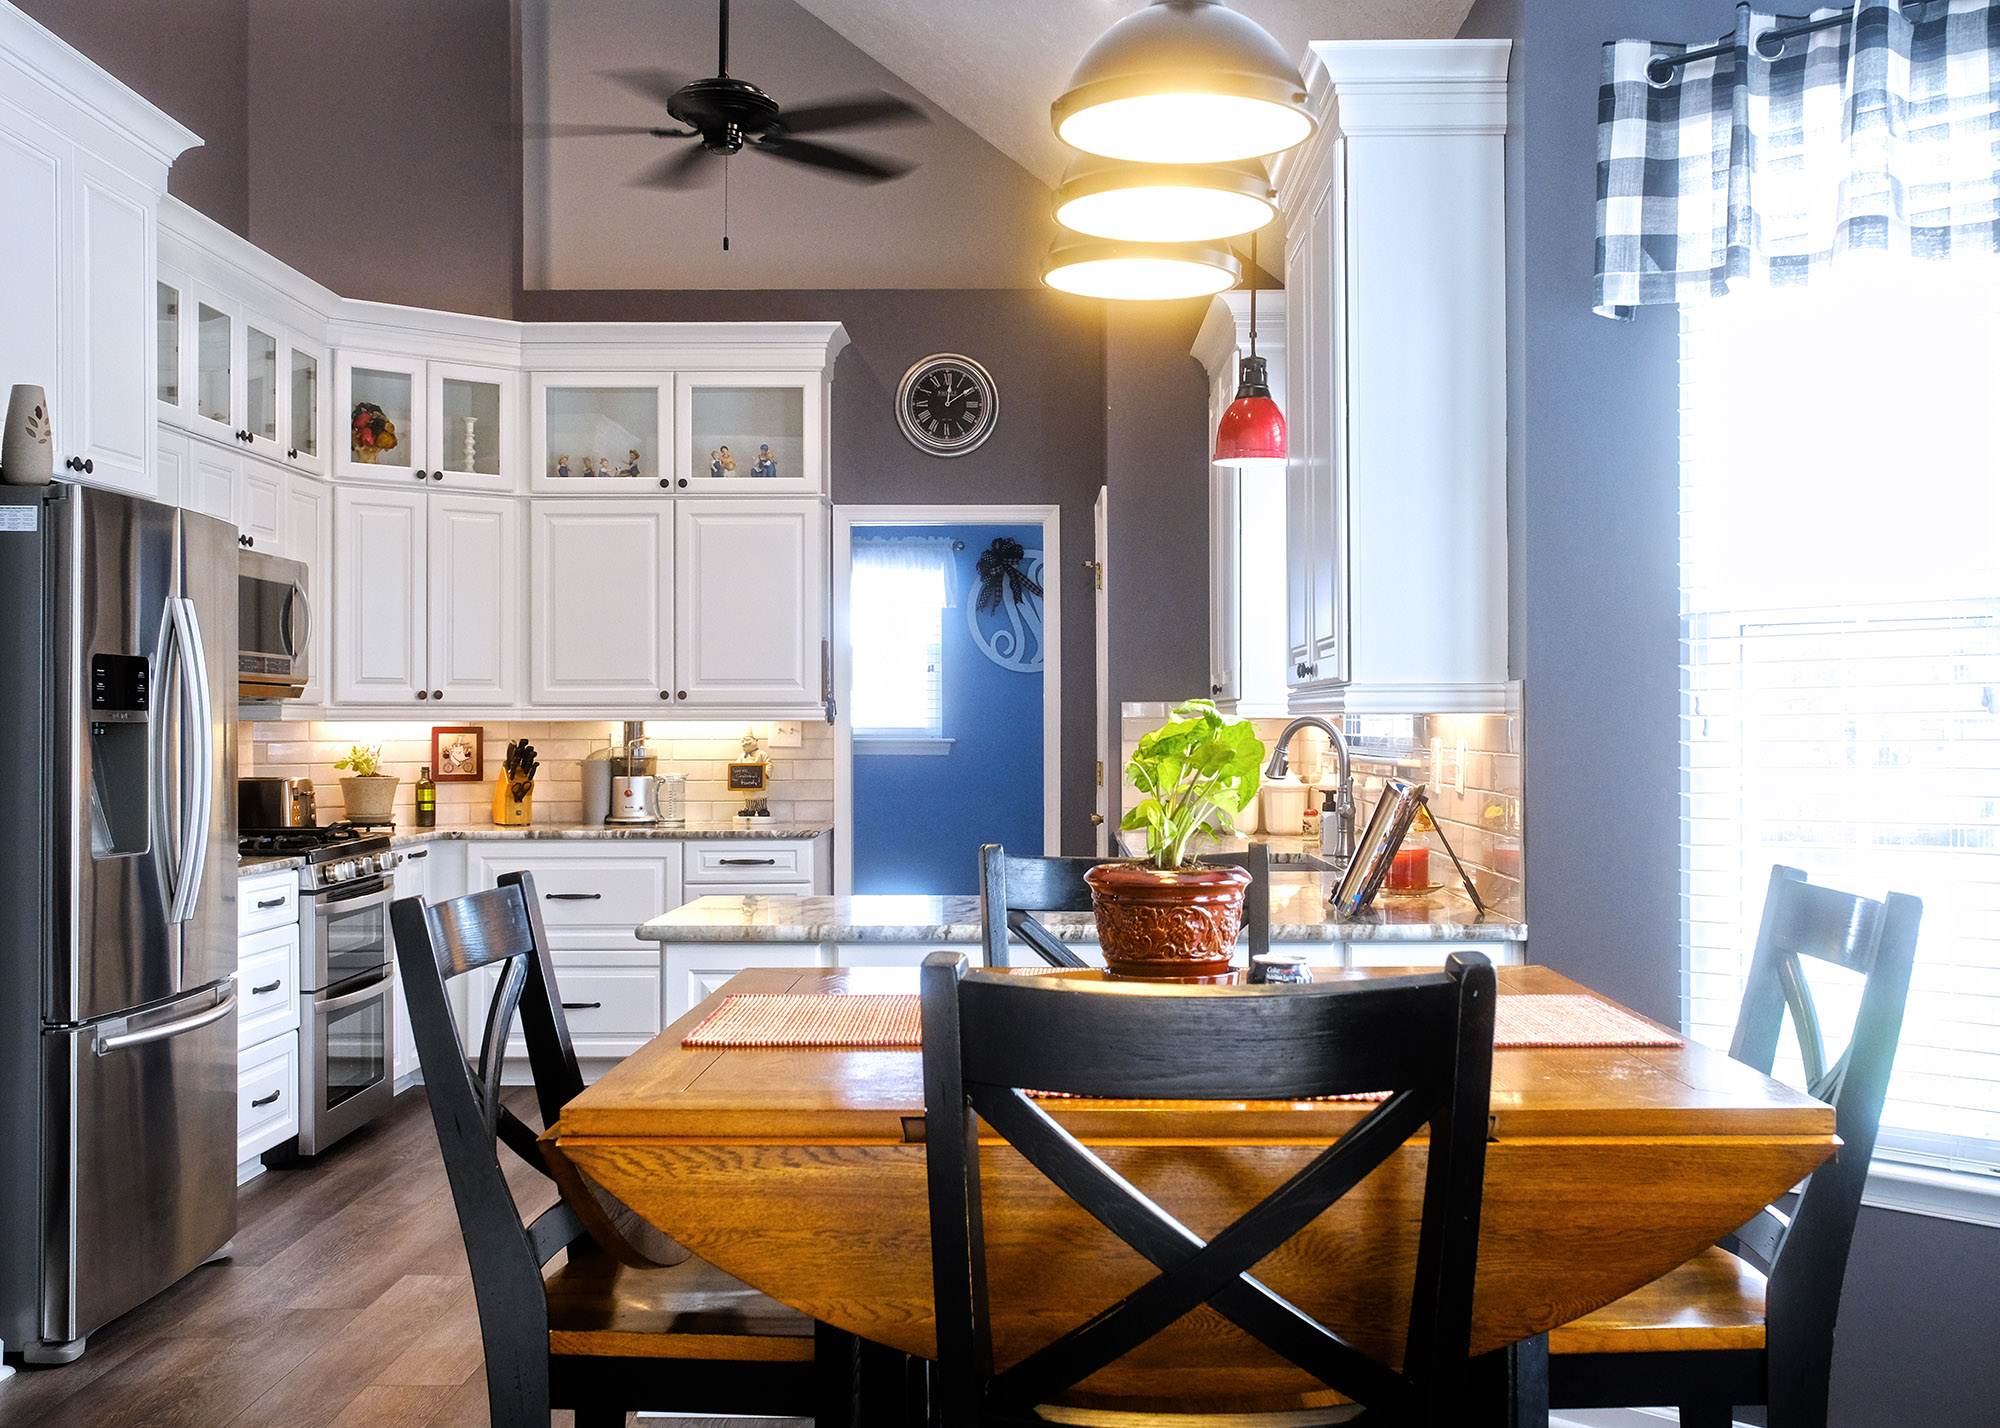 Kitchen remodel with white cabinets, tall uppers with decorative glass doors at the top. Vaulted Ceiling, stainless steel appliances, granite countertops, open concept.